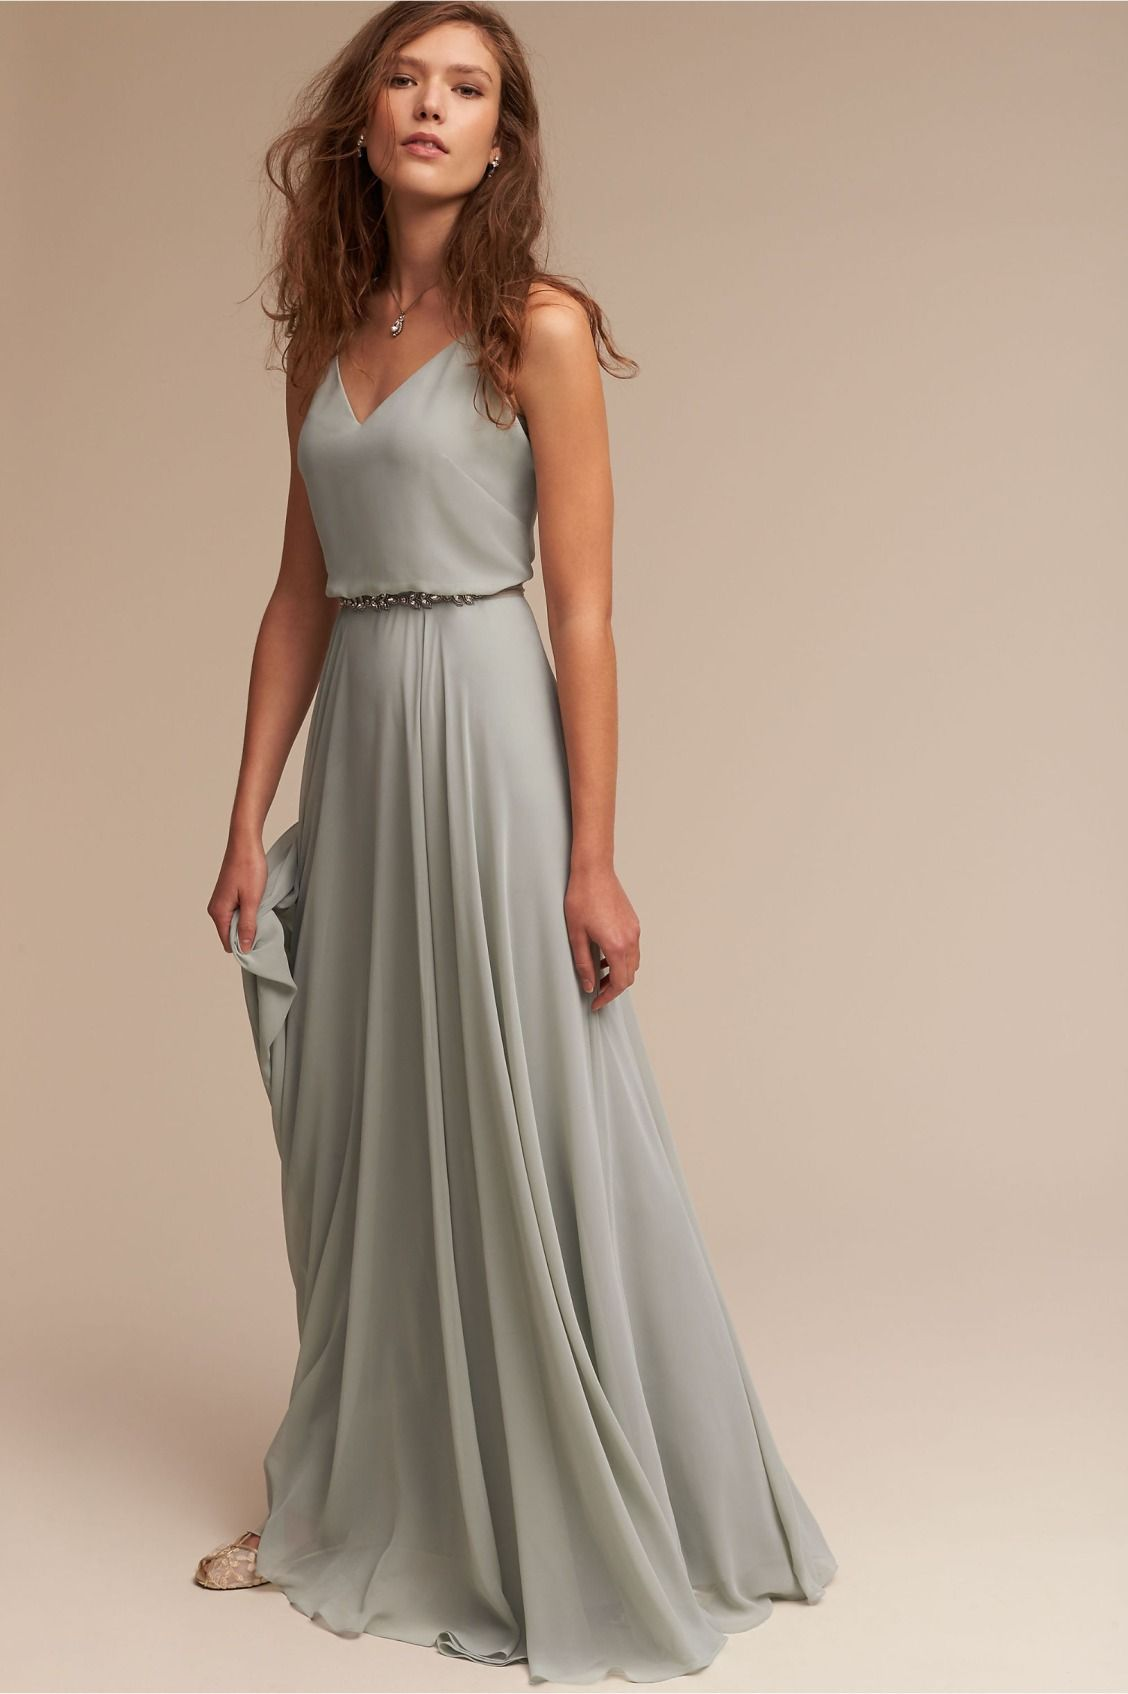 fresh  Inesse Dress in Morning Mist from BHLDN  silberhochzeit